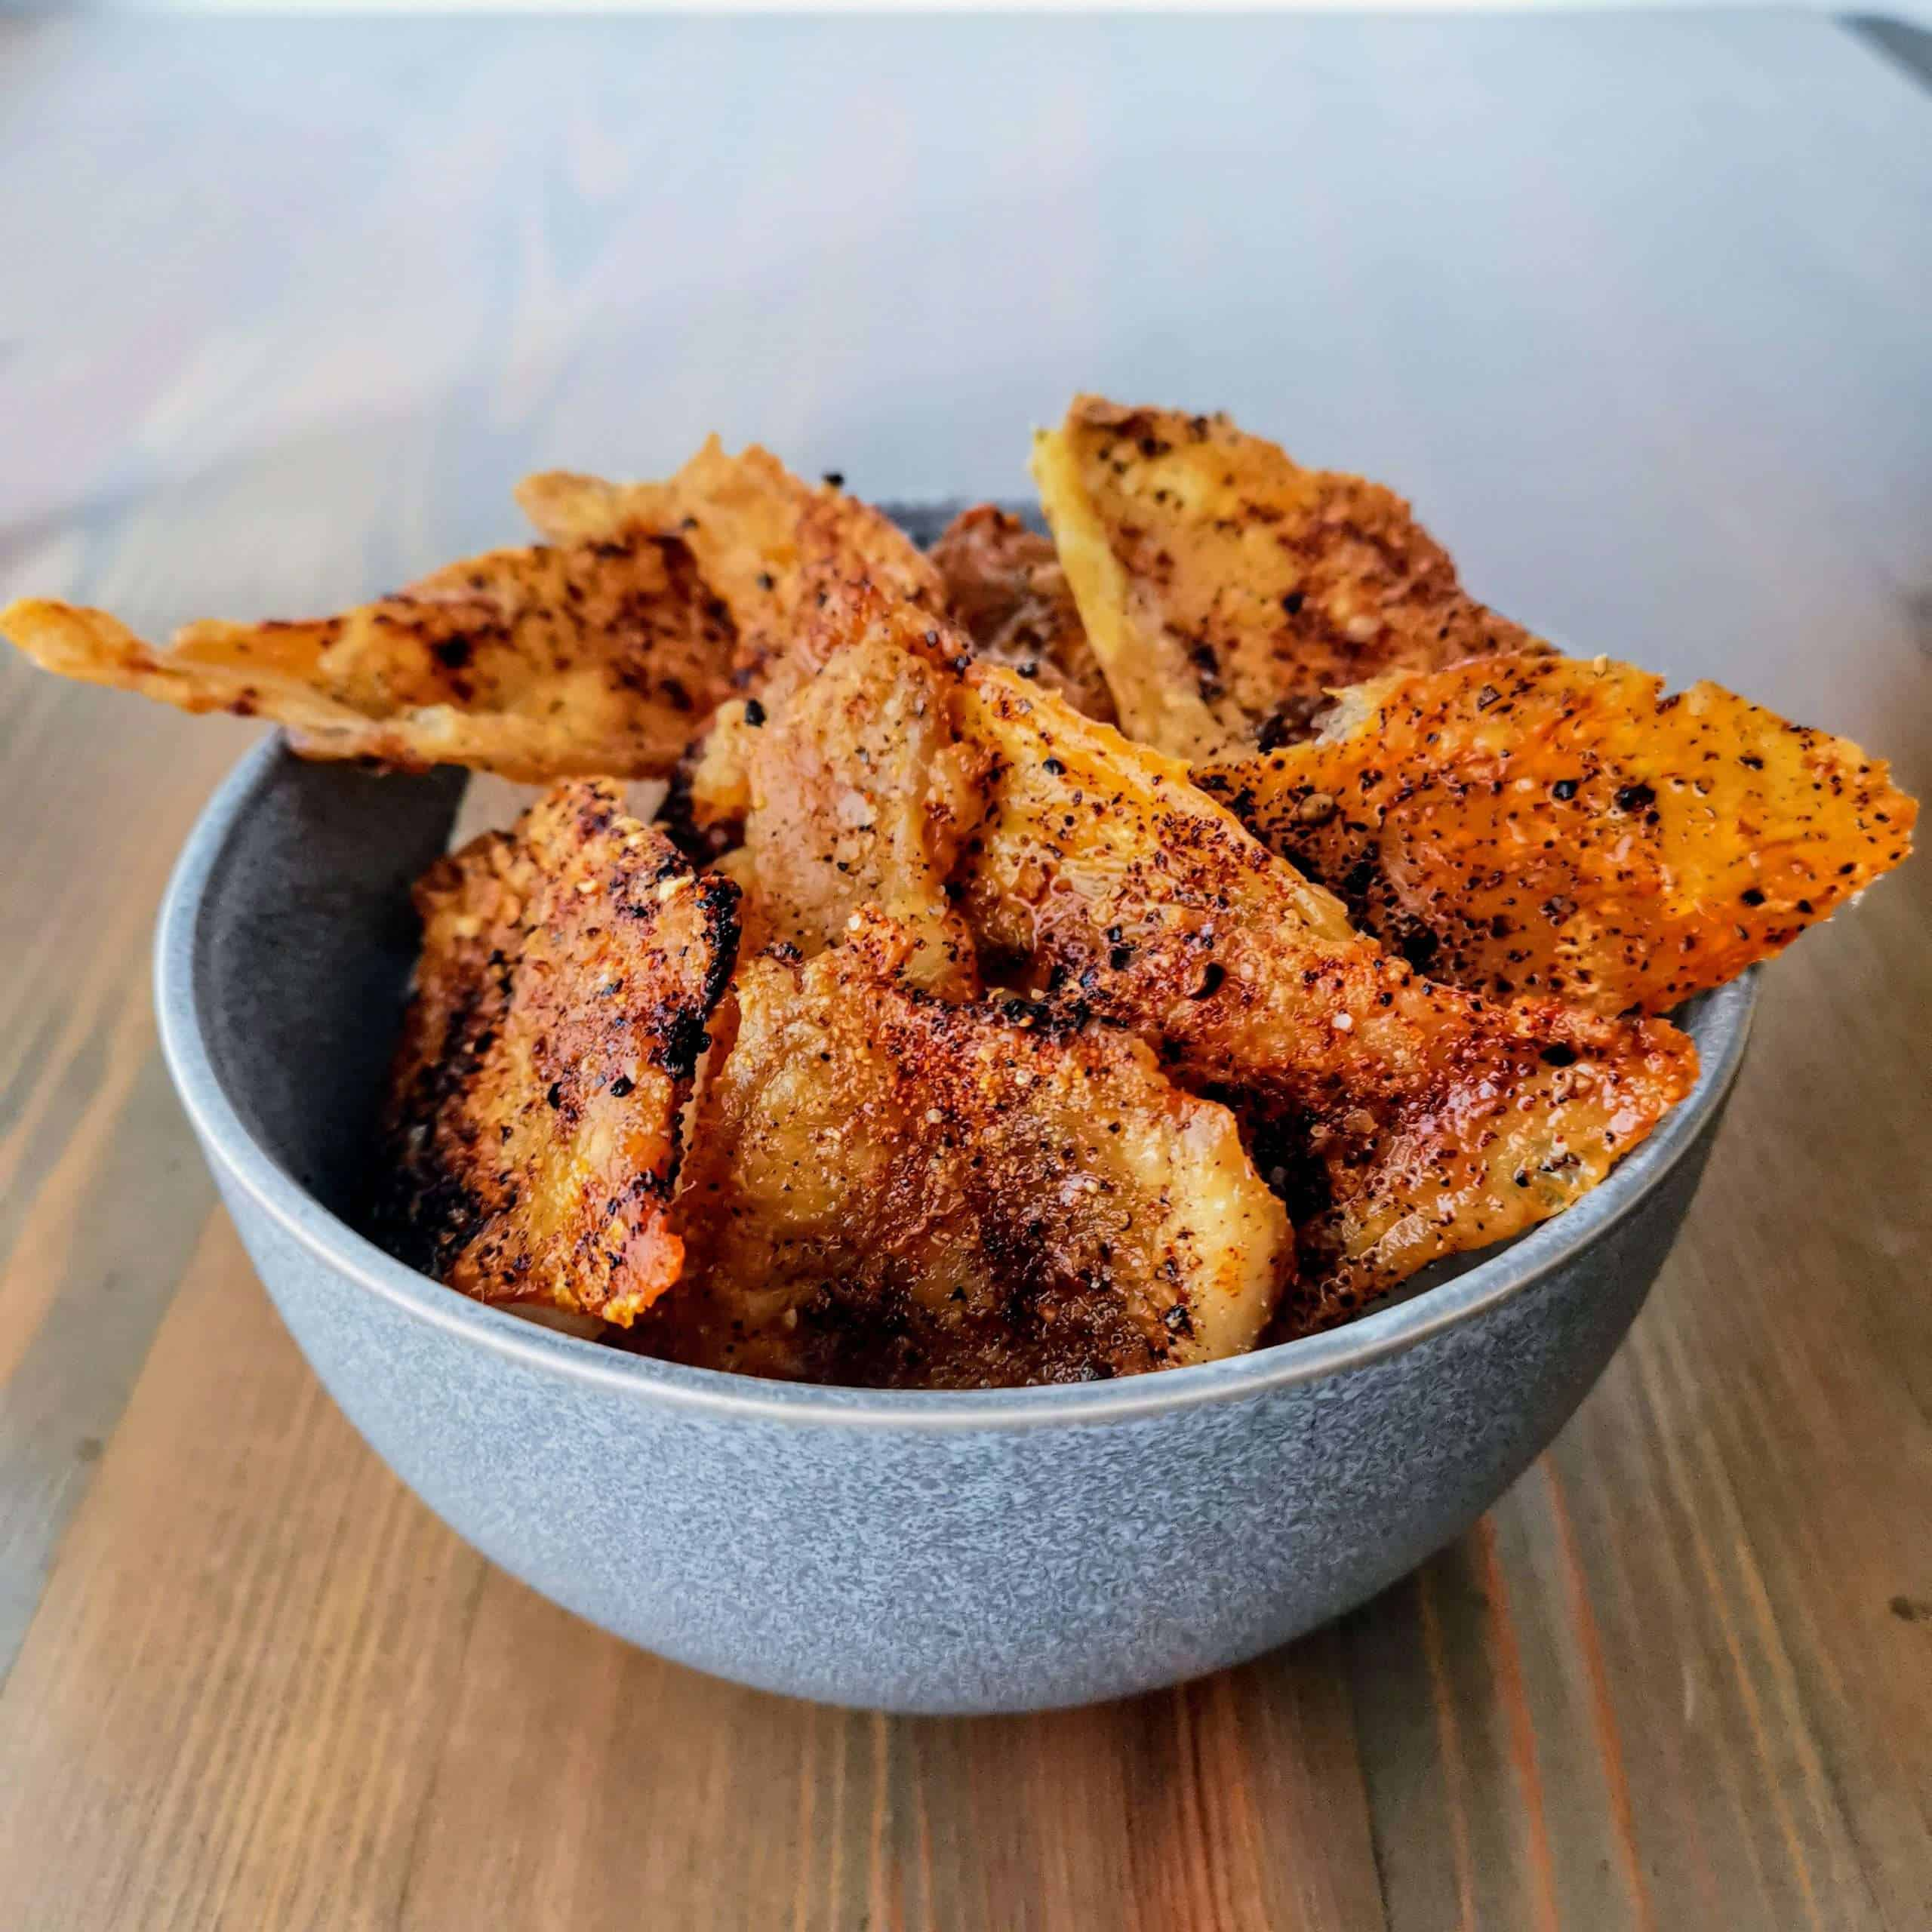 Keto friendly chicken skin nacho chips in a bowl from an angle